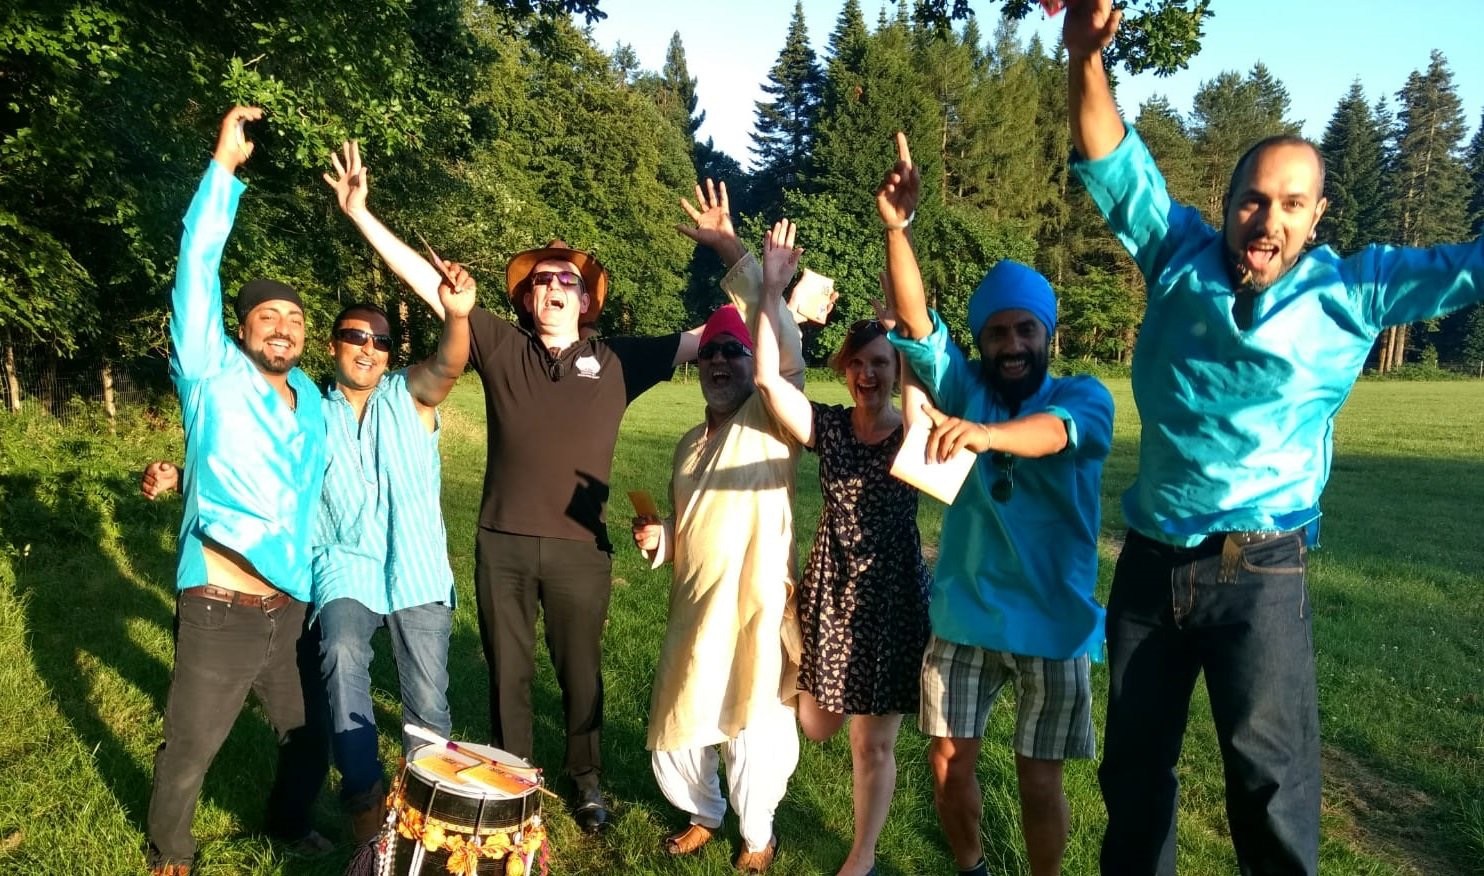 Surtaal Suite No. 1, RSVP Bhangra, Lydbrook Band, Ian Holmes, Proms in the Park, Speech House, 30 June 2018